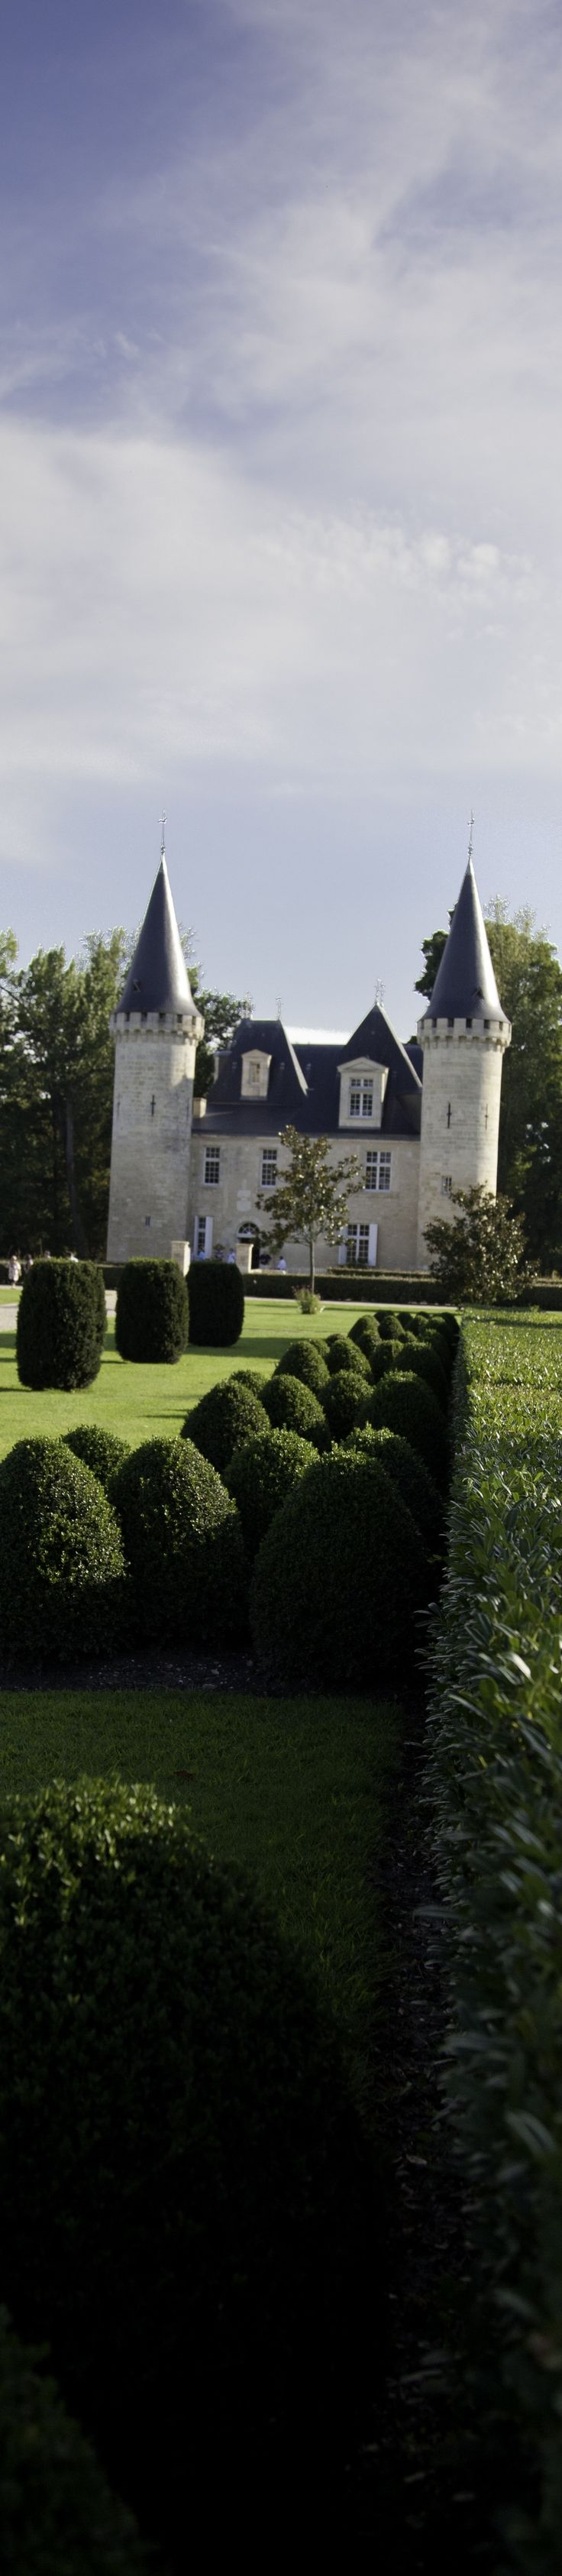 286 best A French Chateau images on Pinterest